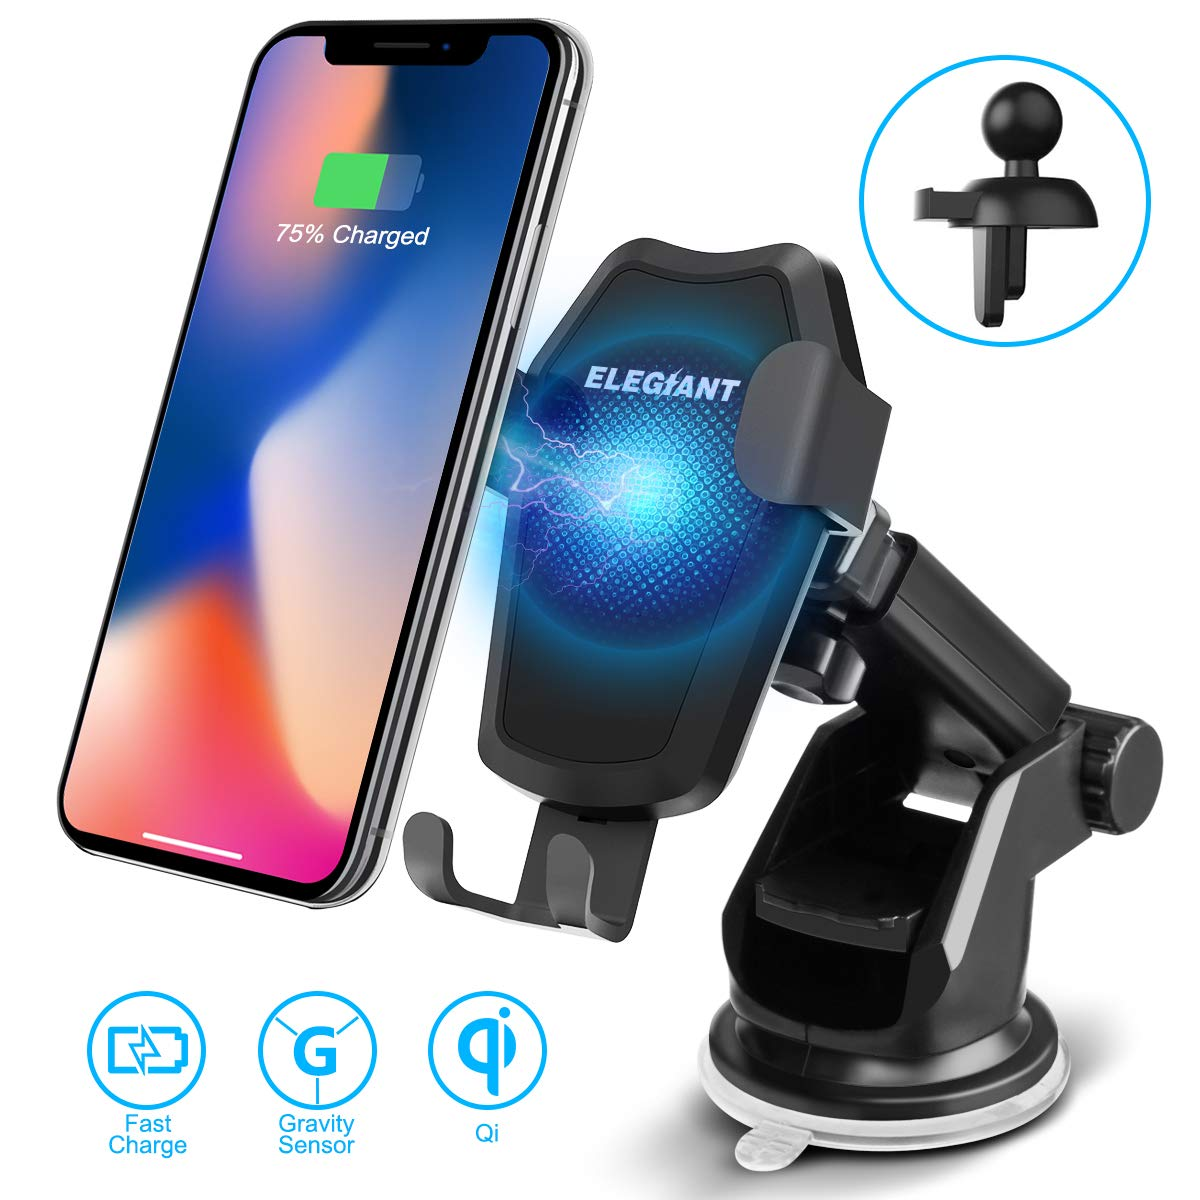 2 in 1 Car Air Vent & Dashboard Universal Phone Holder 10W Qi Fast Wireless Charger